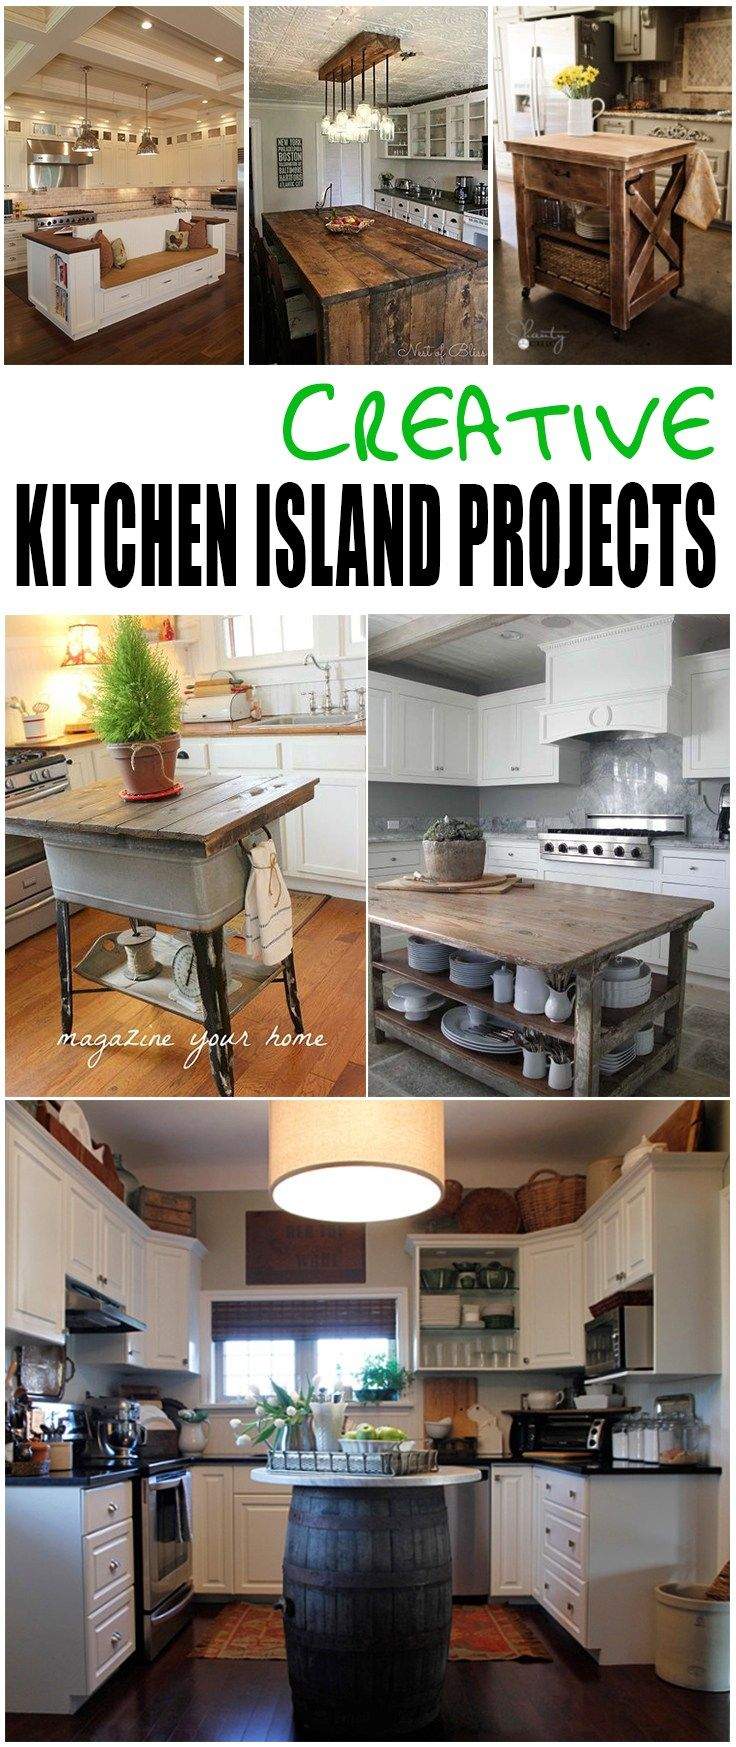 Small Of Kitchen Island Projects